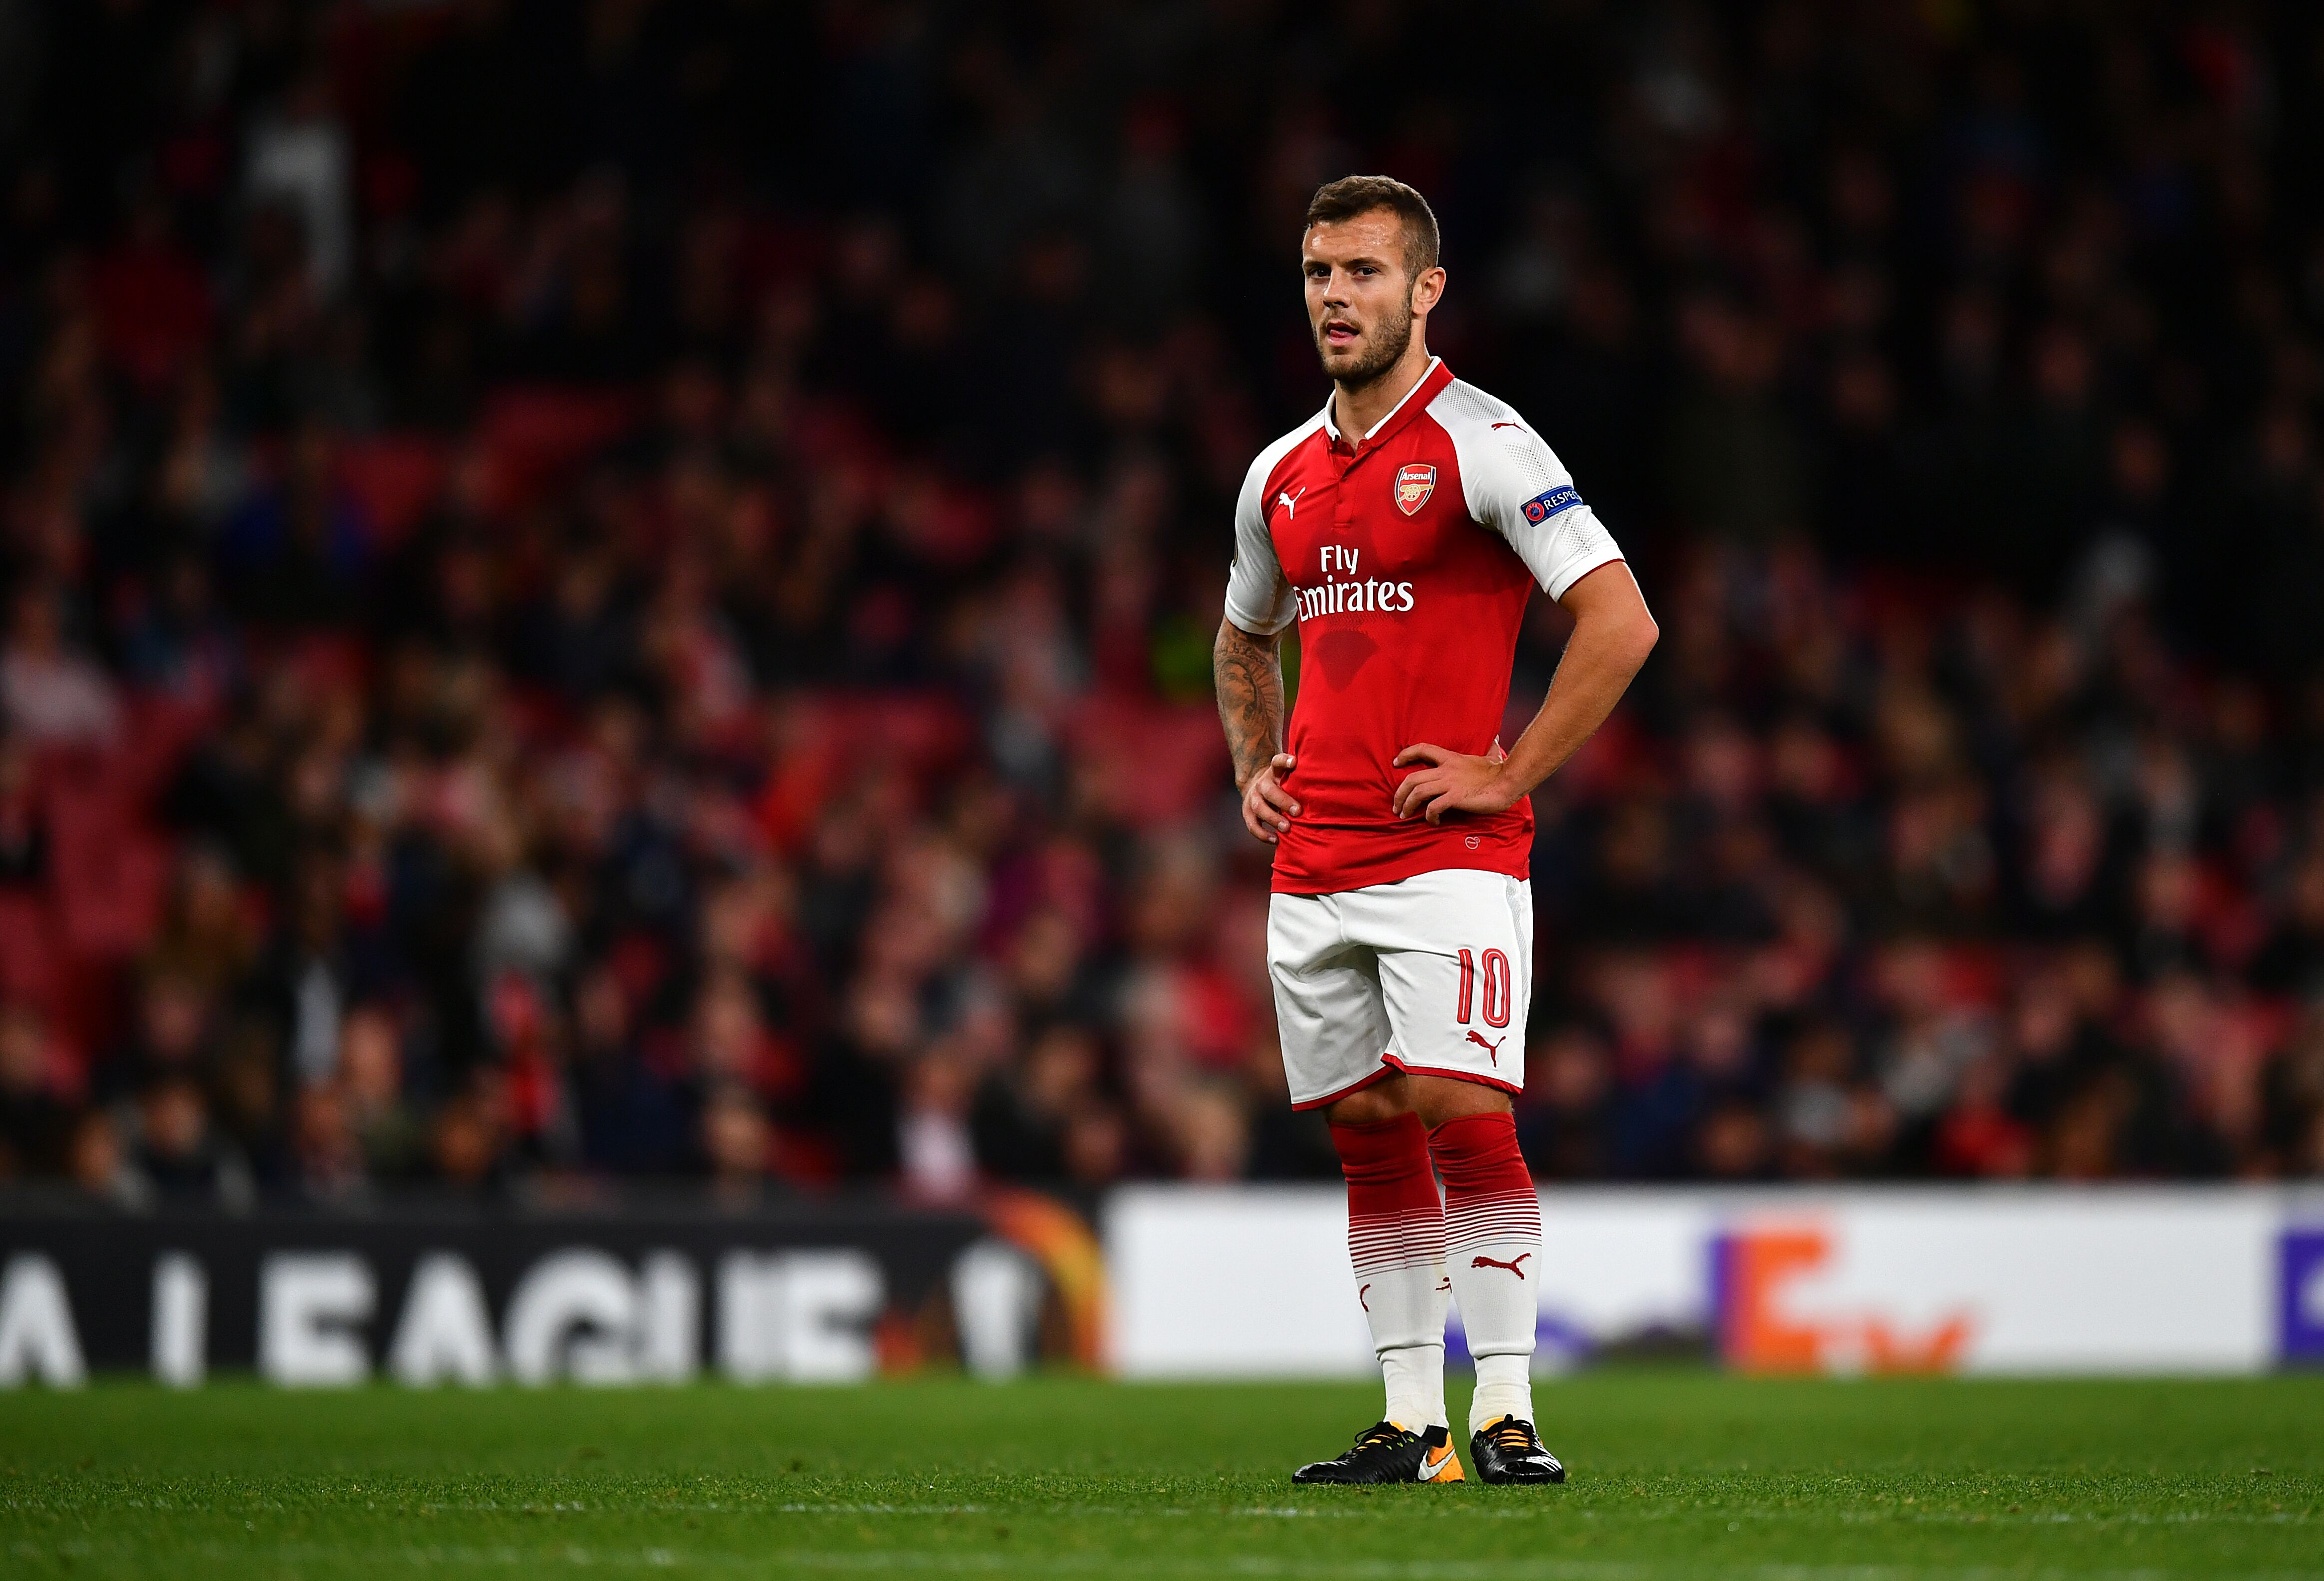 Did West Ham make the wrong decision on Jack Wilshere